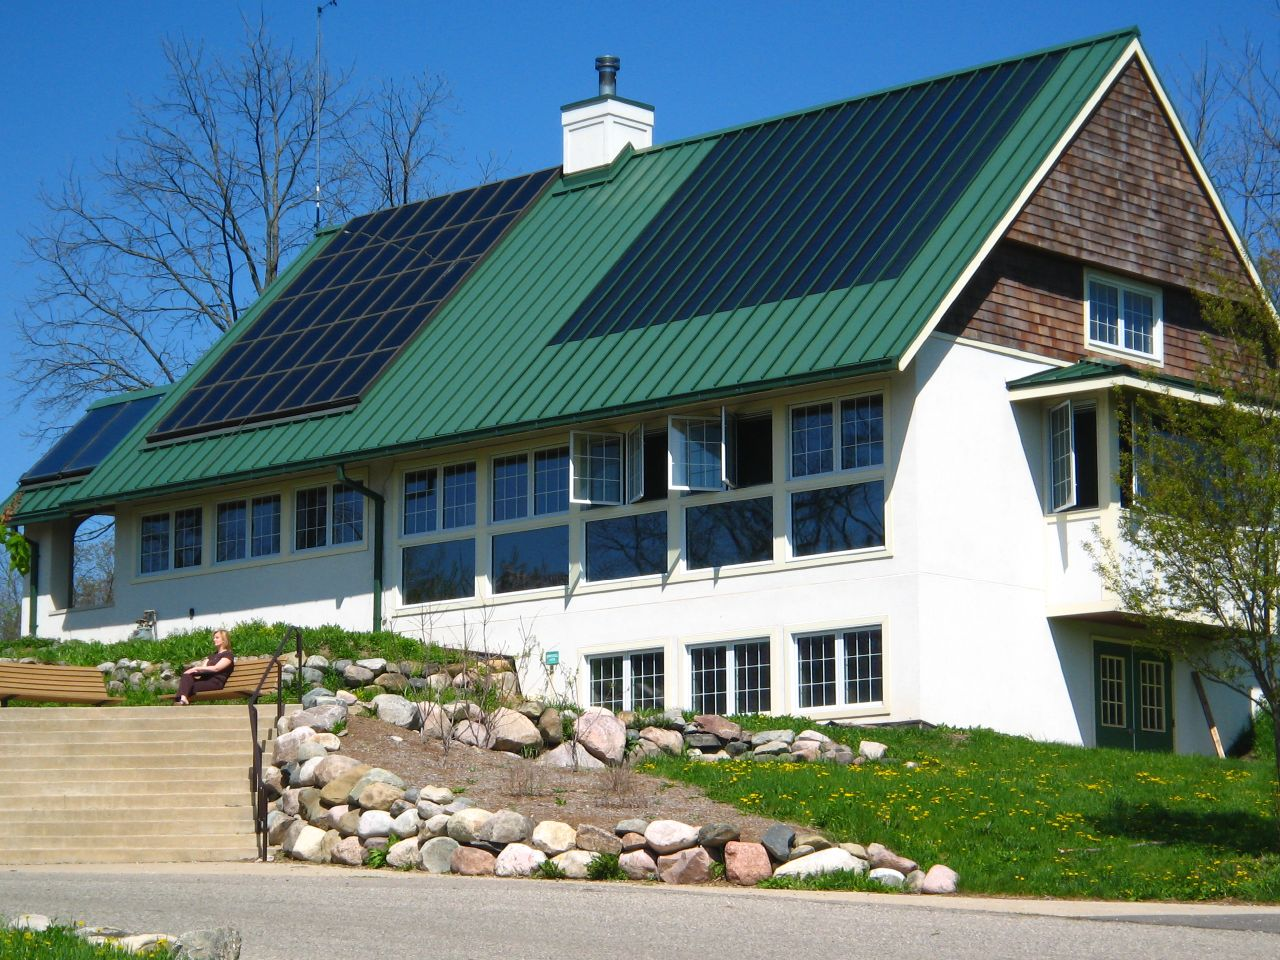 5.3 The Effect of Solar Photovoltaic Panels on Residential ...